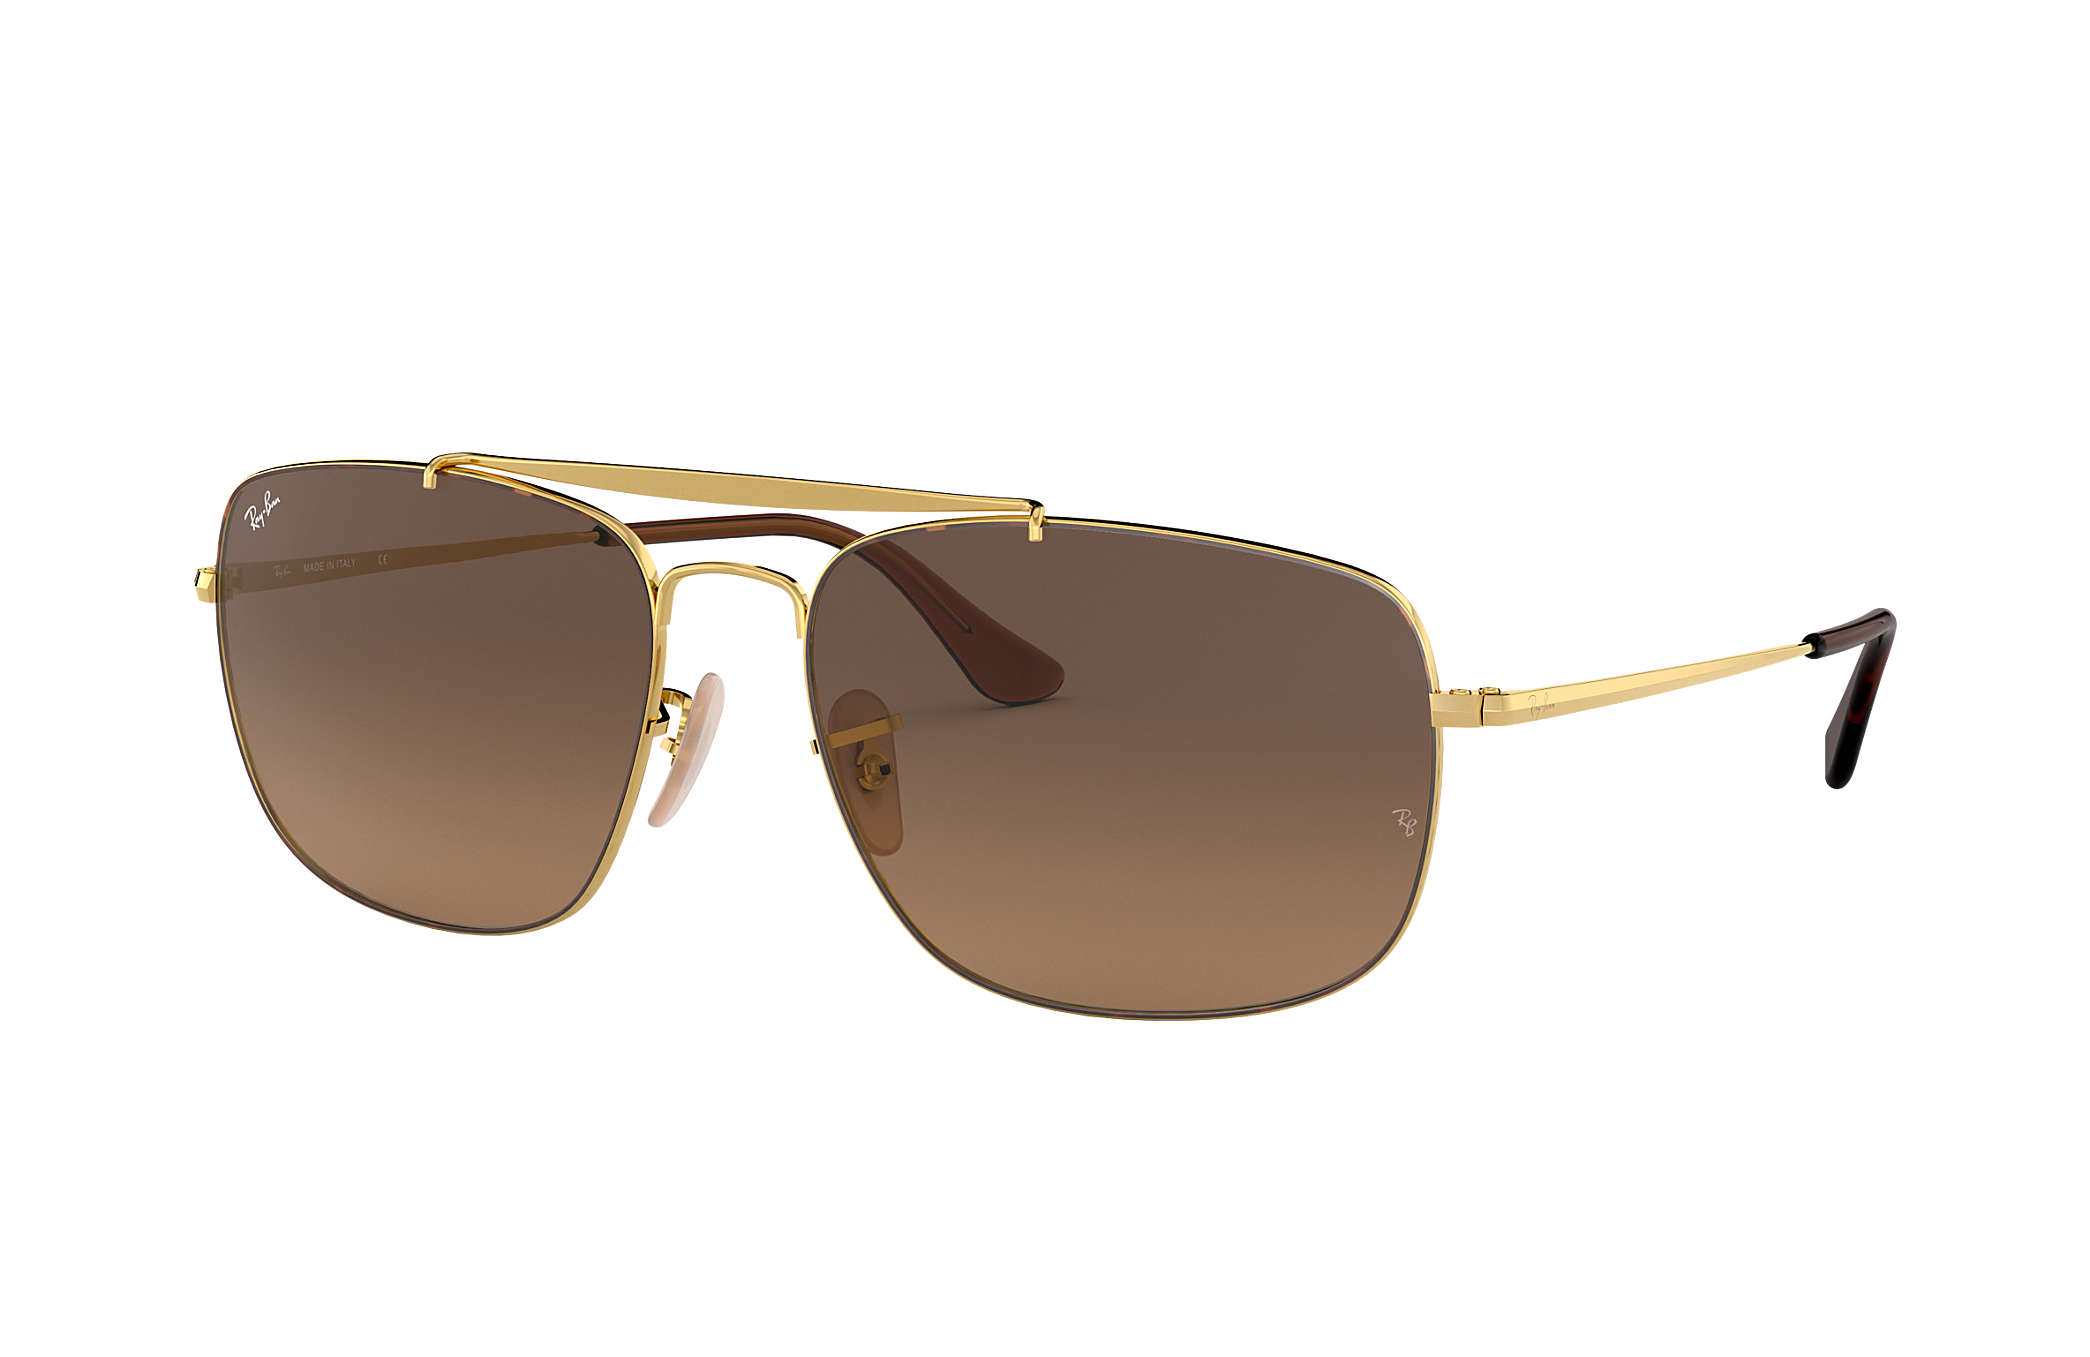 91e9f02cc7 Ray-Ban Colonel RB3560 Tortoise - Steel - Brown Lenses ...